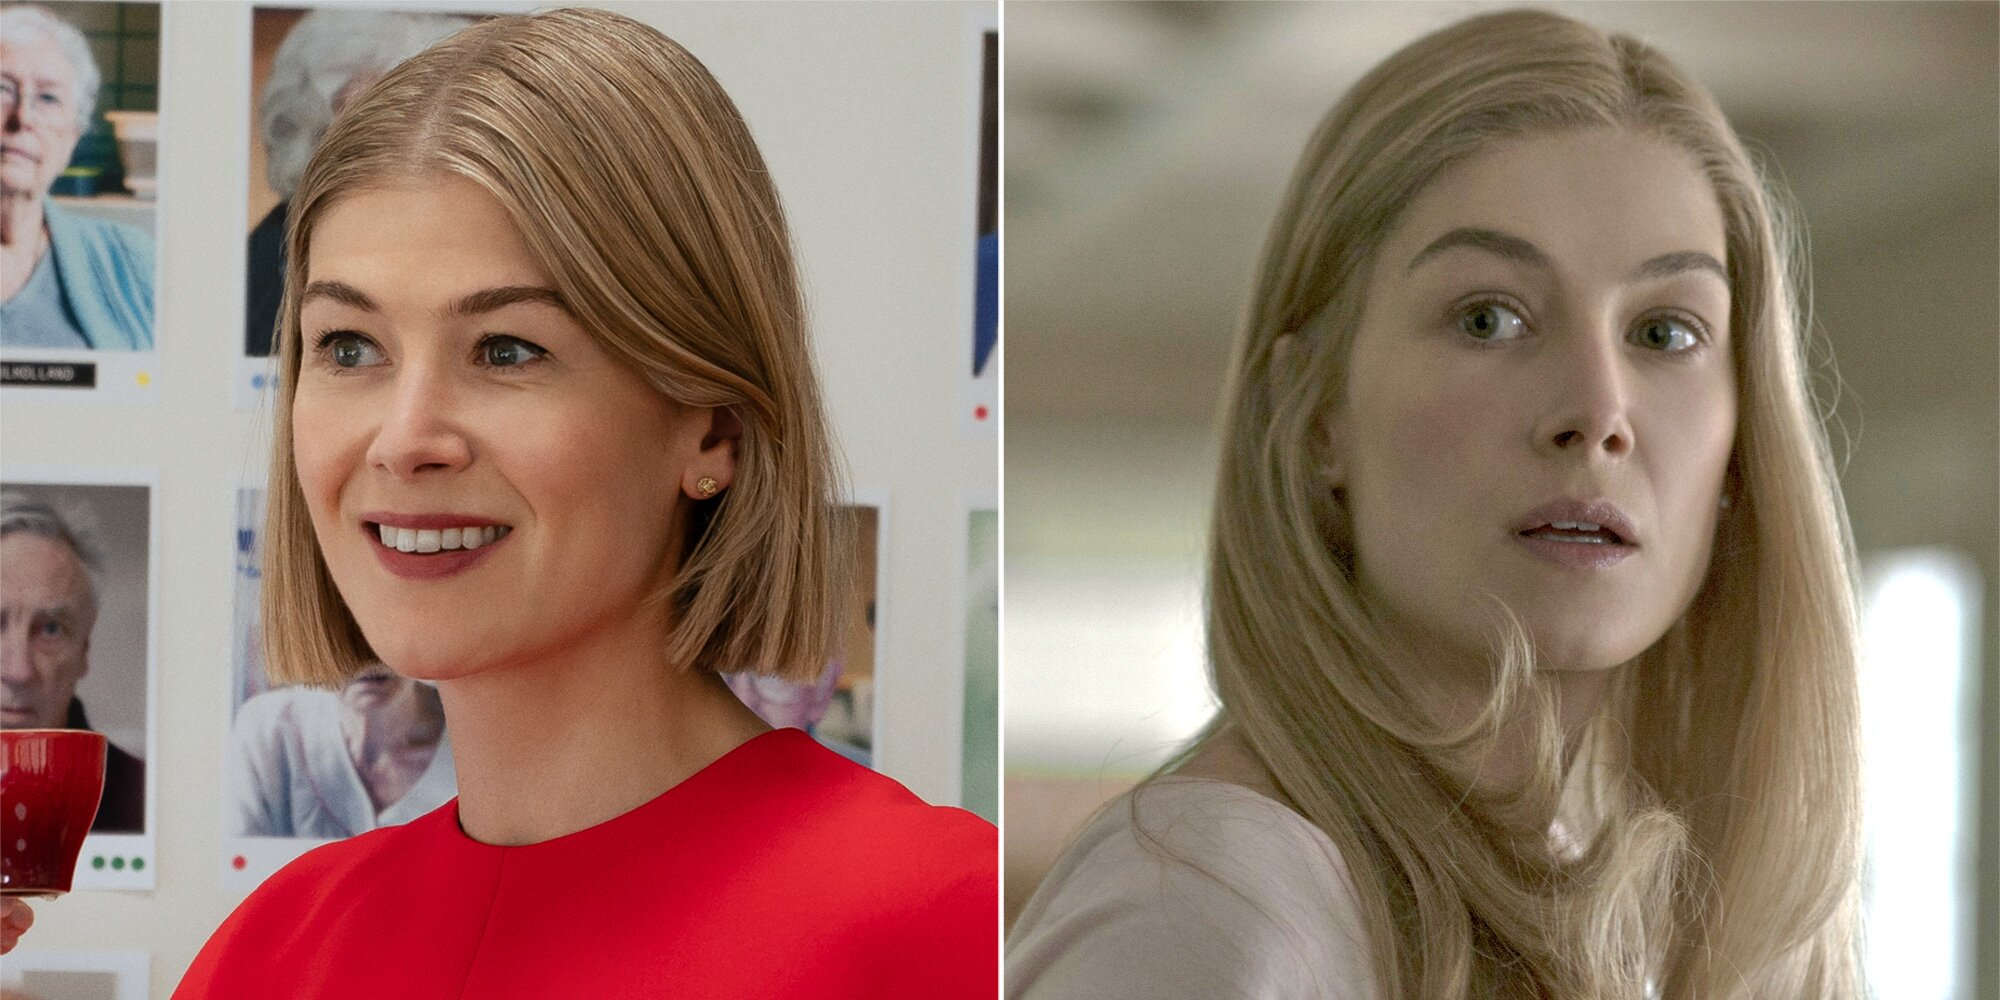 Rosamund Pike compares her cunning antiheroines in 'I Care a Lot' and 'Gone Girl' - Entertainment Weekly